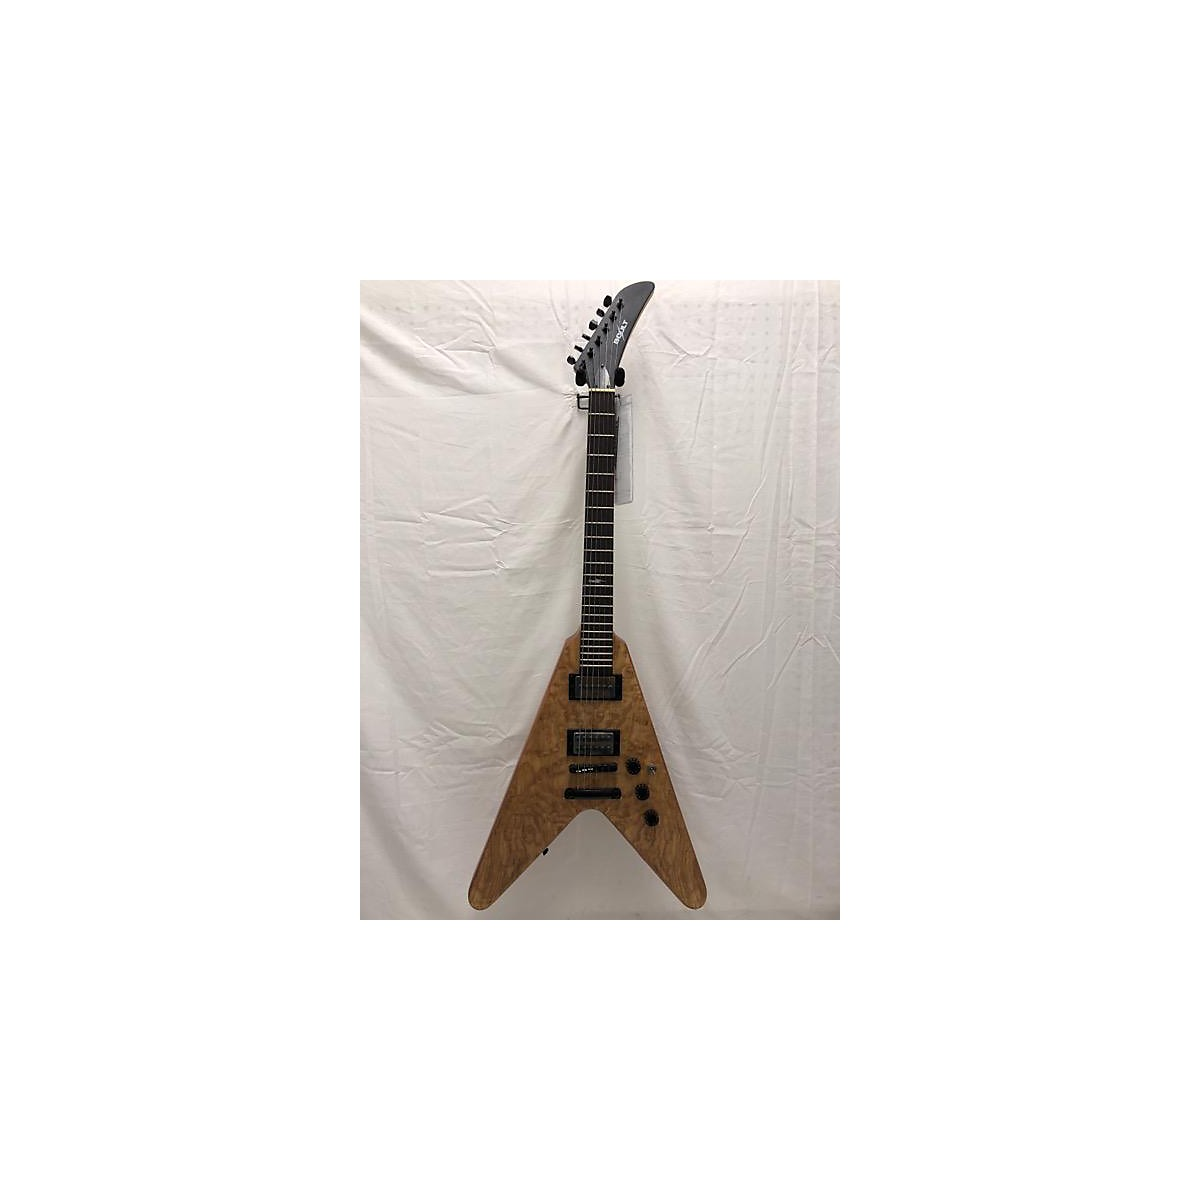 In Store Used Used Boult Flying Prototype Natural Solid Body Electric Guitar